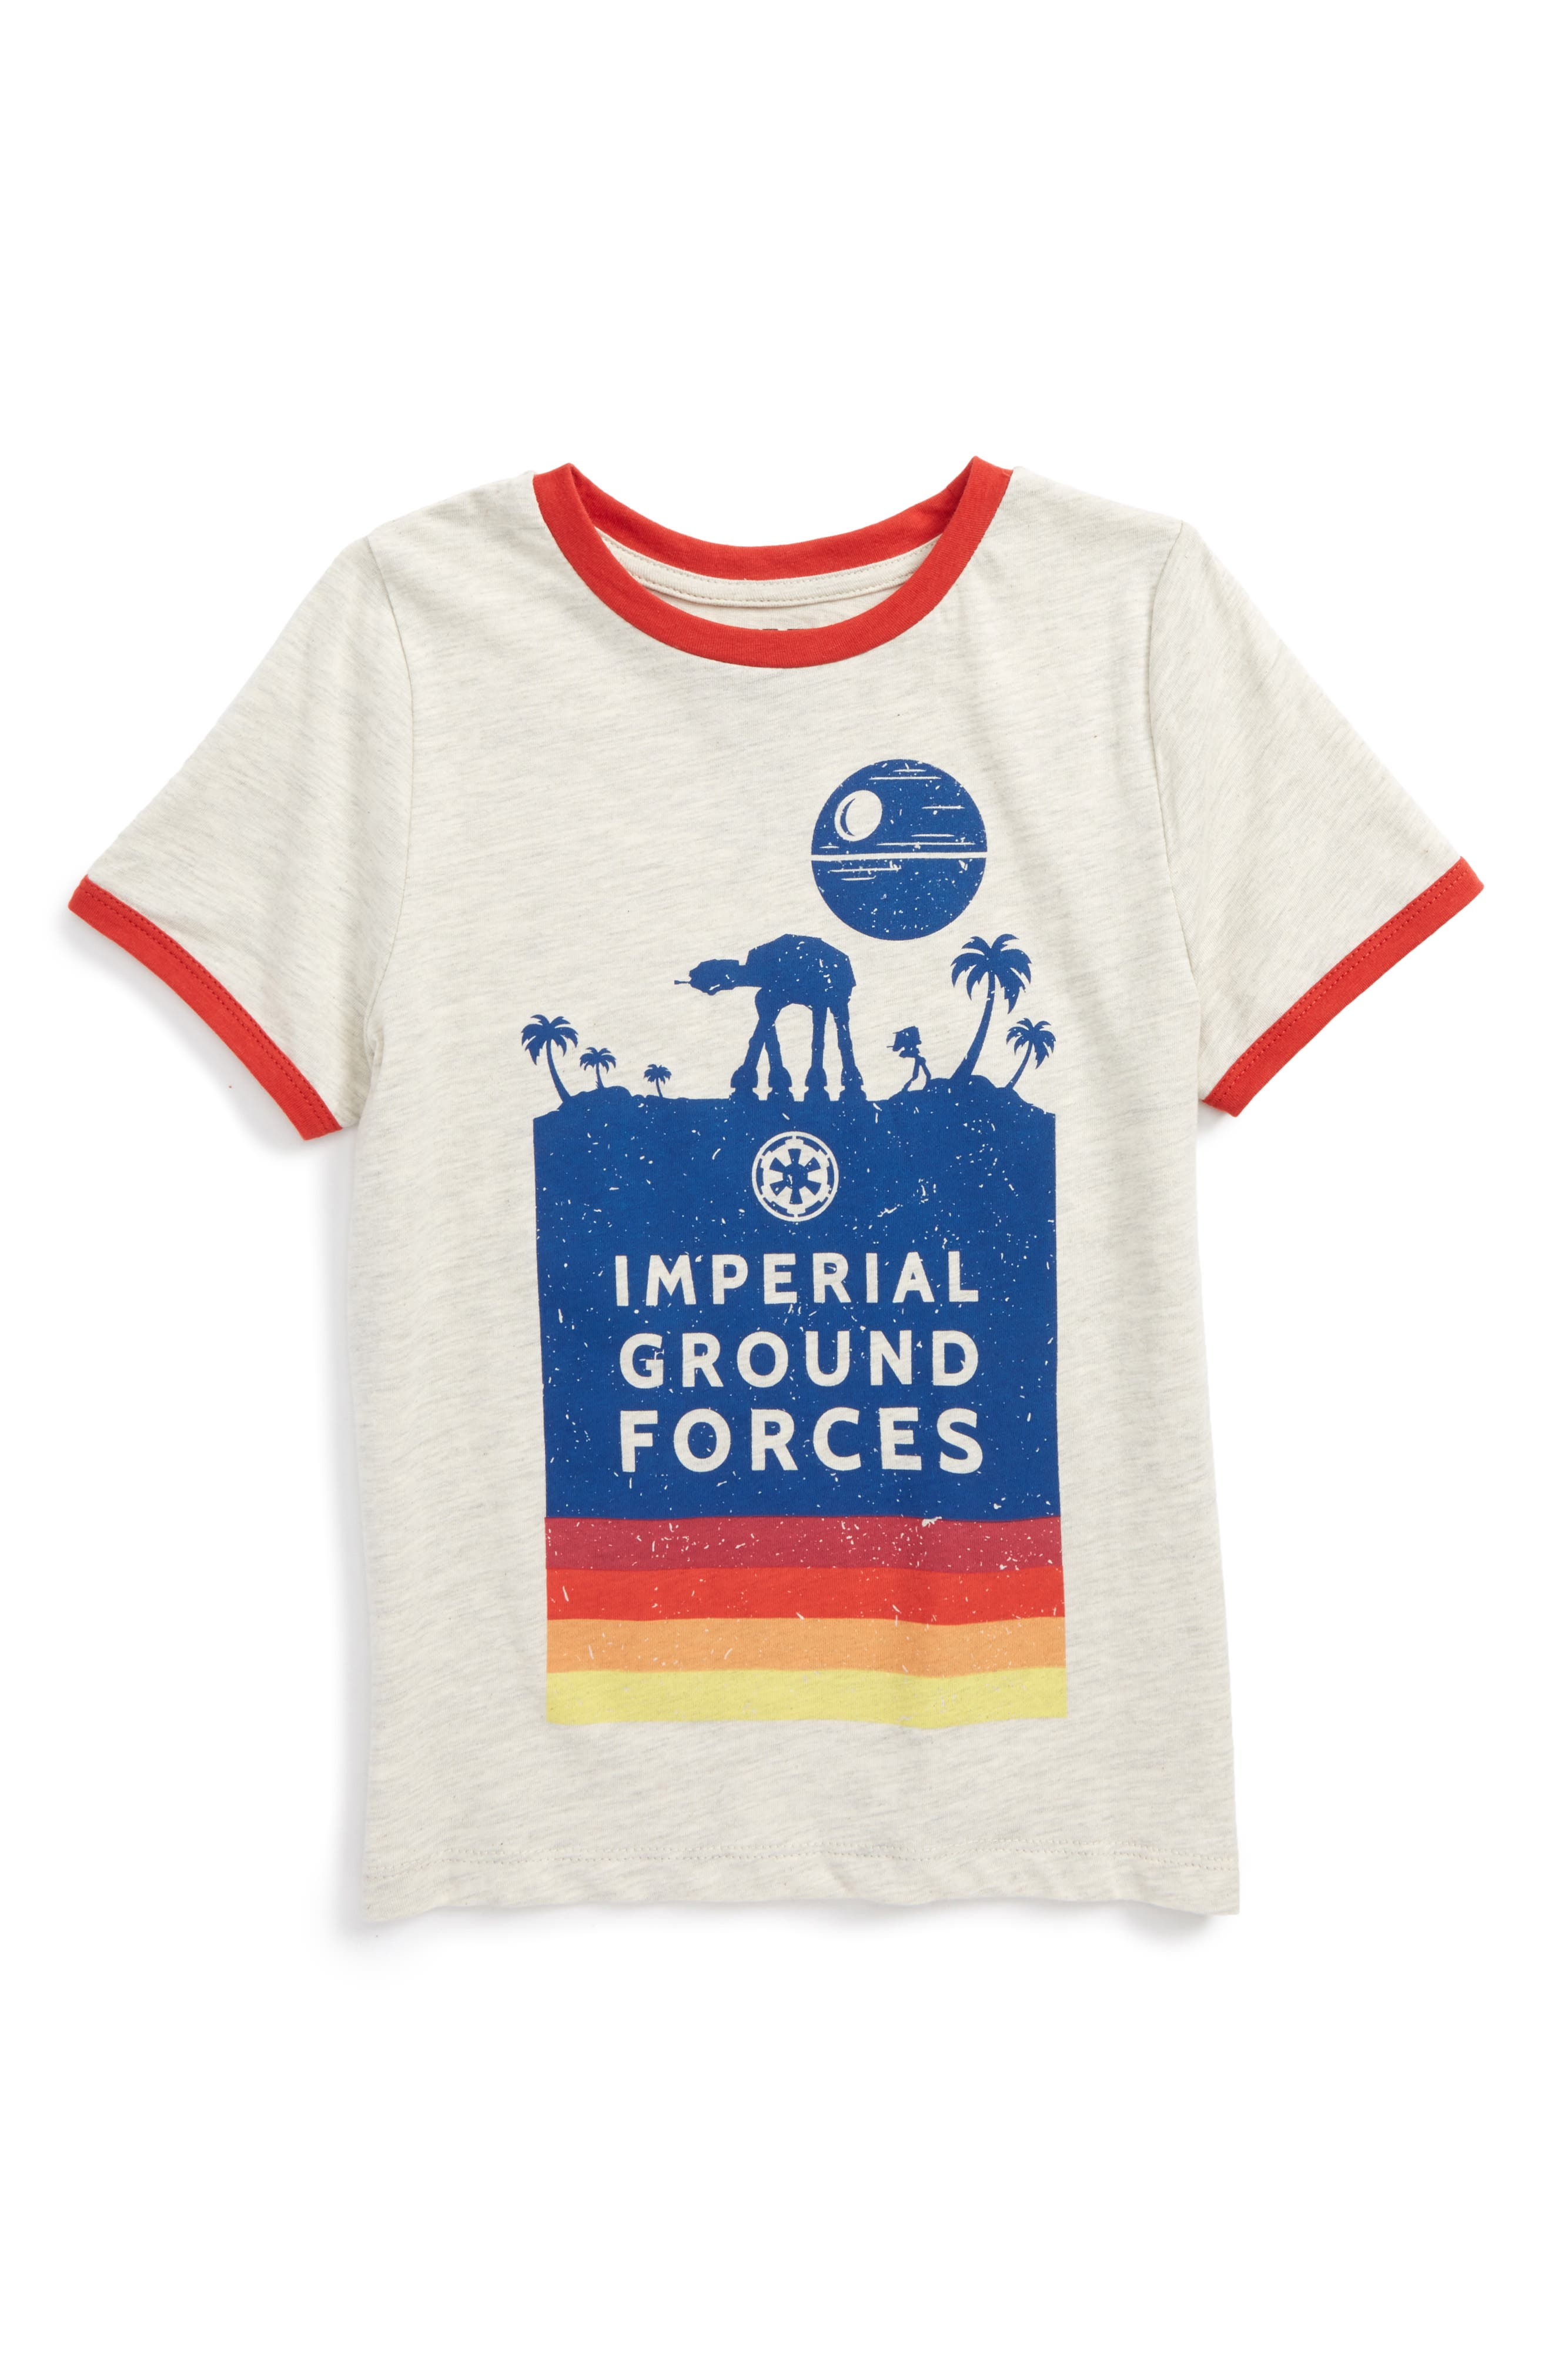 Alternate Image 1 Selected - Mighty Fine x Star Wars™ Imperial Ground Forces T-Shirt (Toddler Boys & Little Boys)